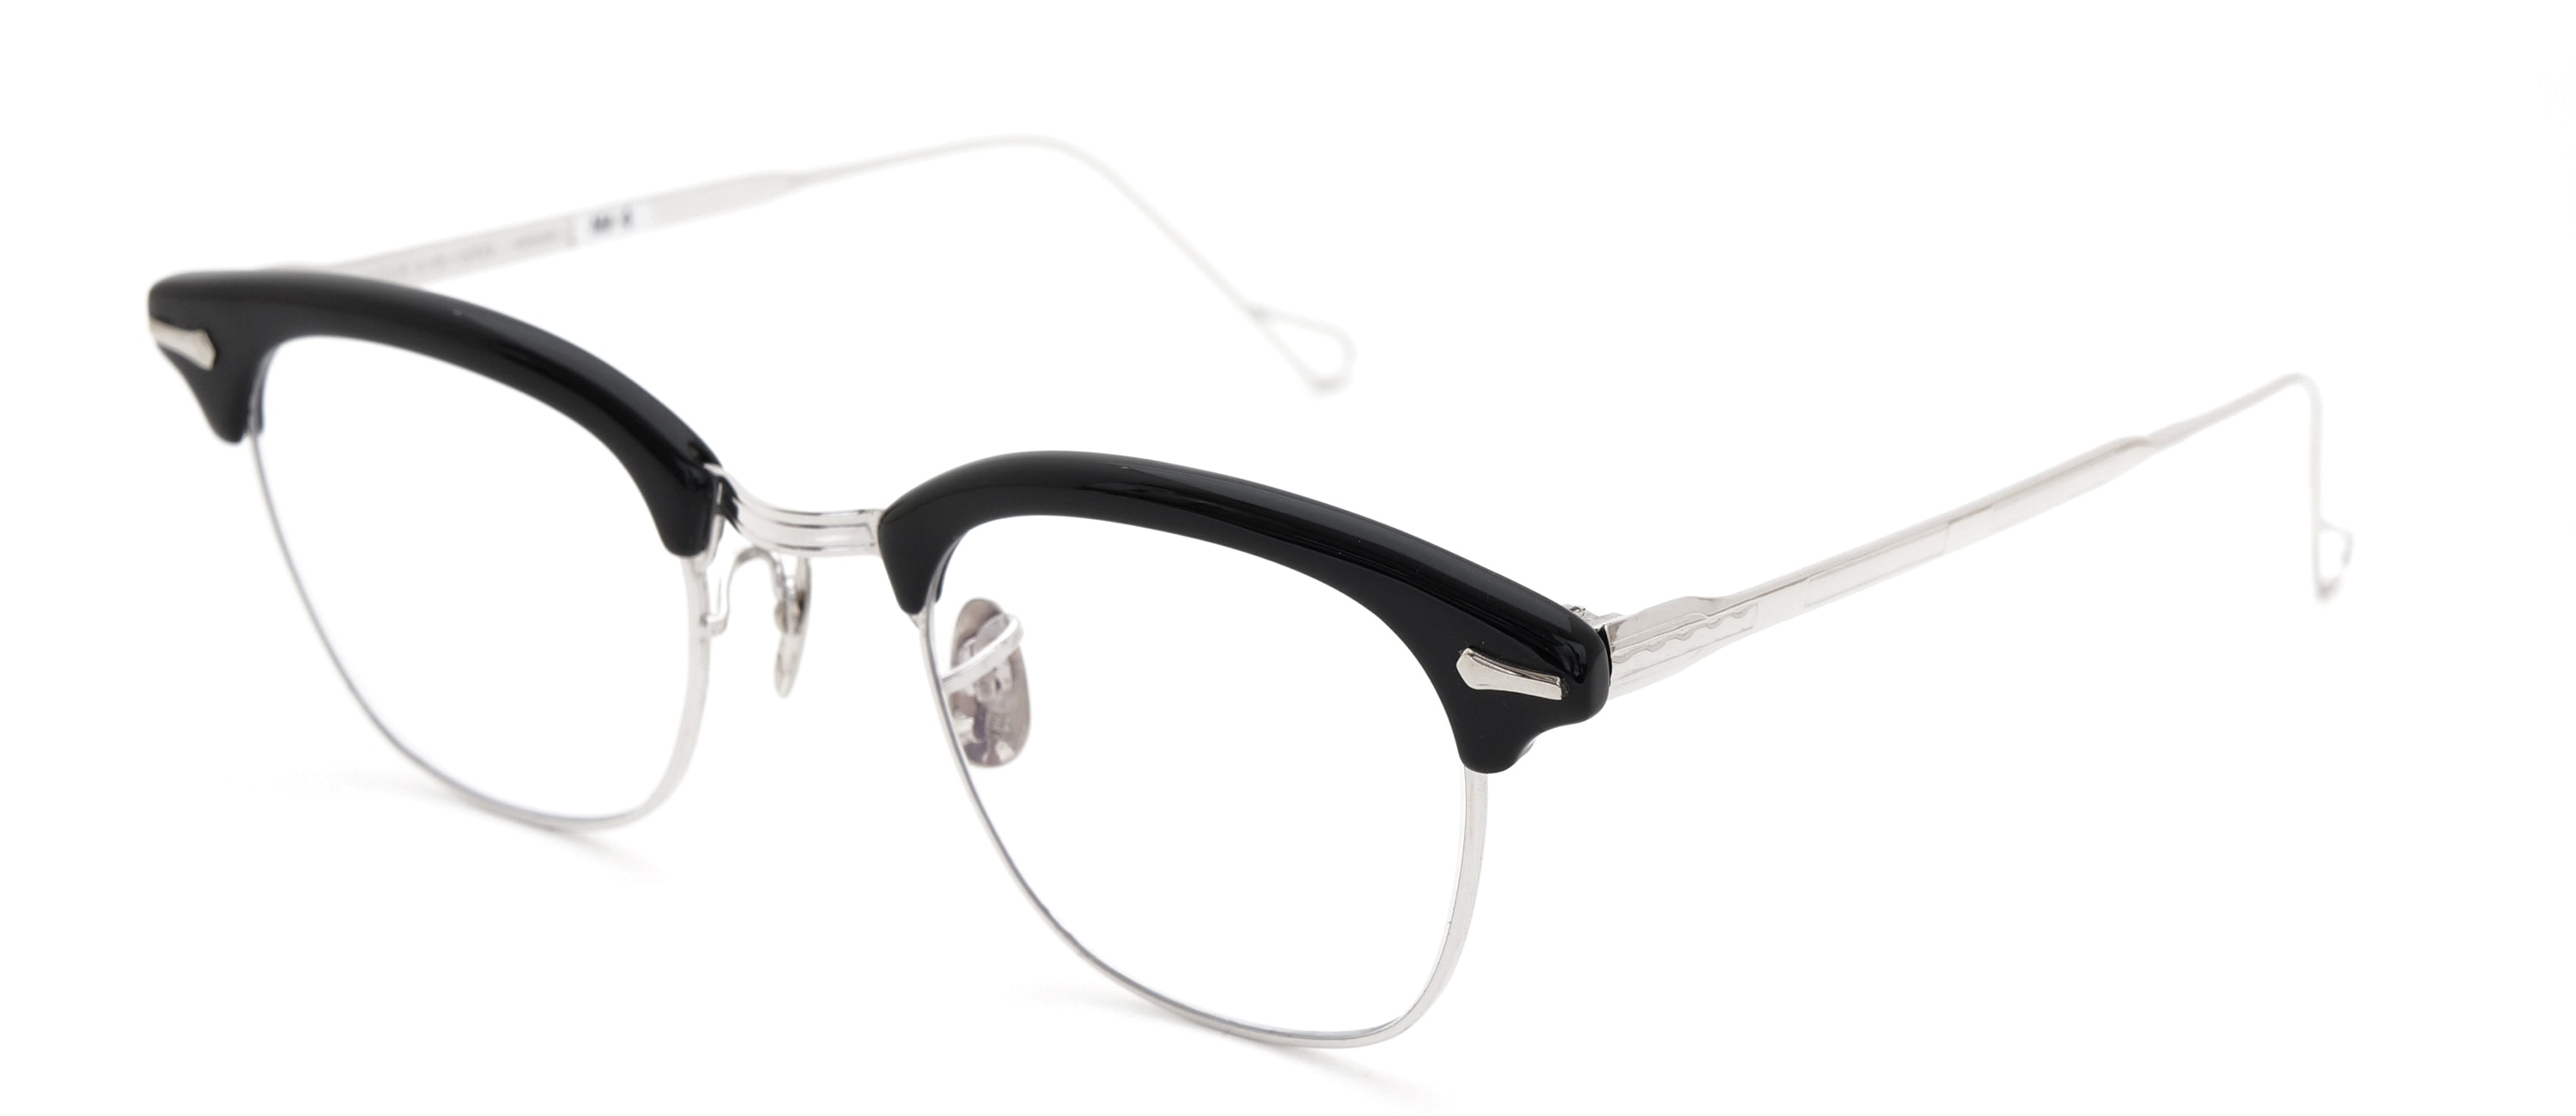 The Spectacle メガネ 1950s-1960s SHURON RONSIR GF-Temple Black WG 1/10 12KGF 46/22 イメージ3